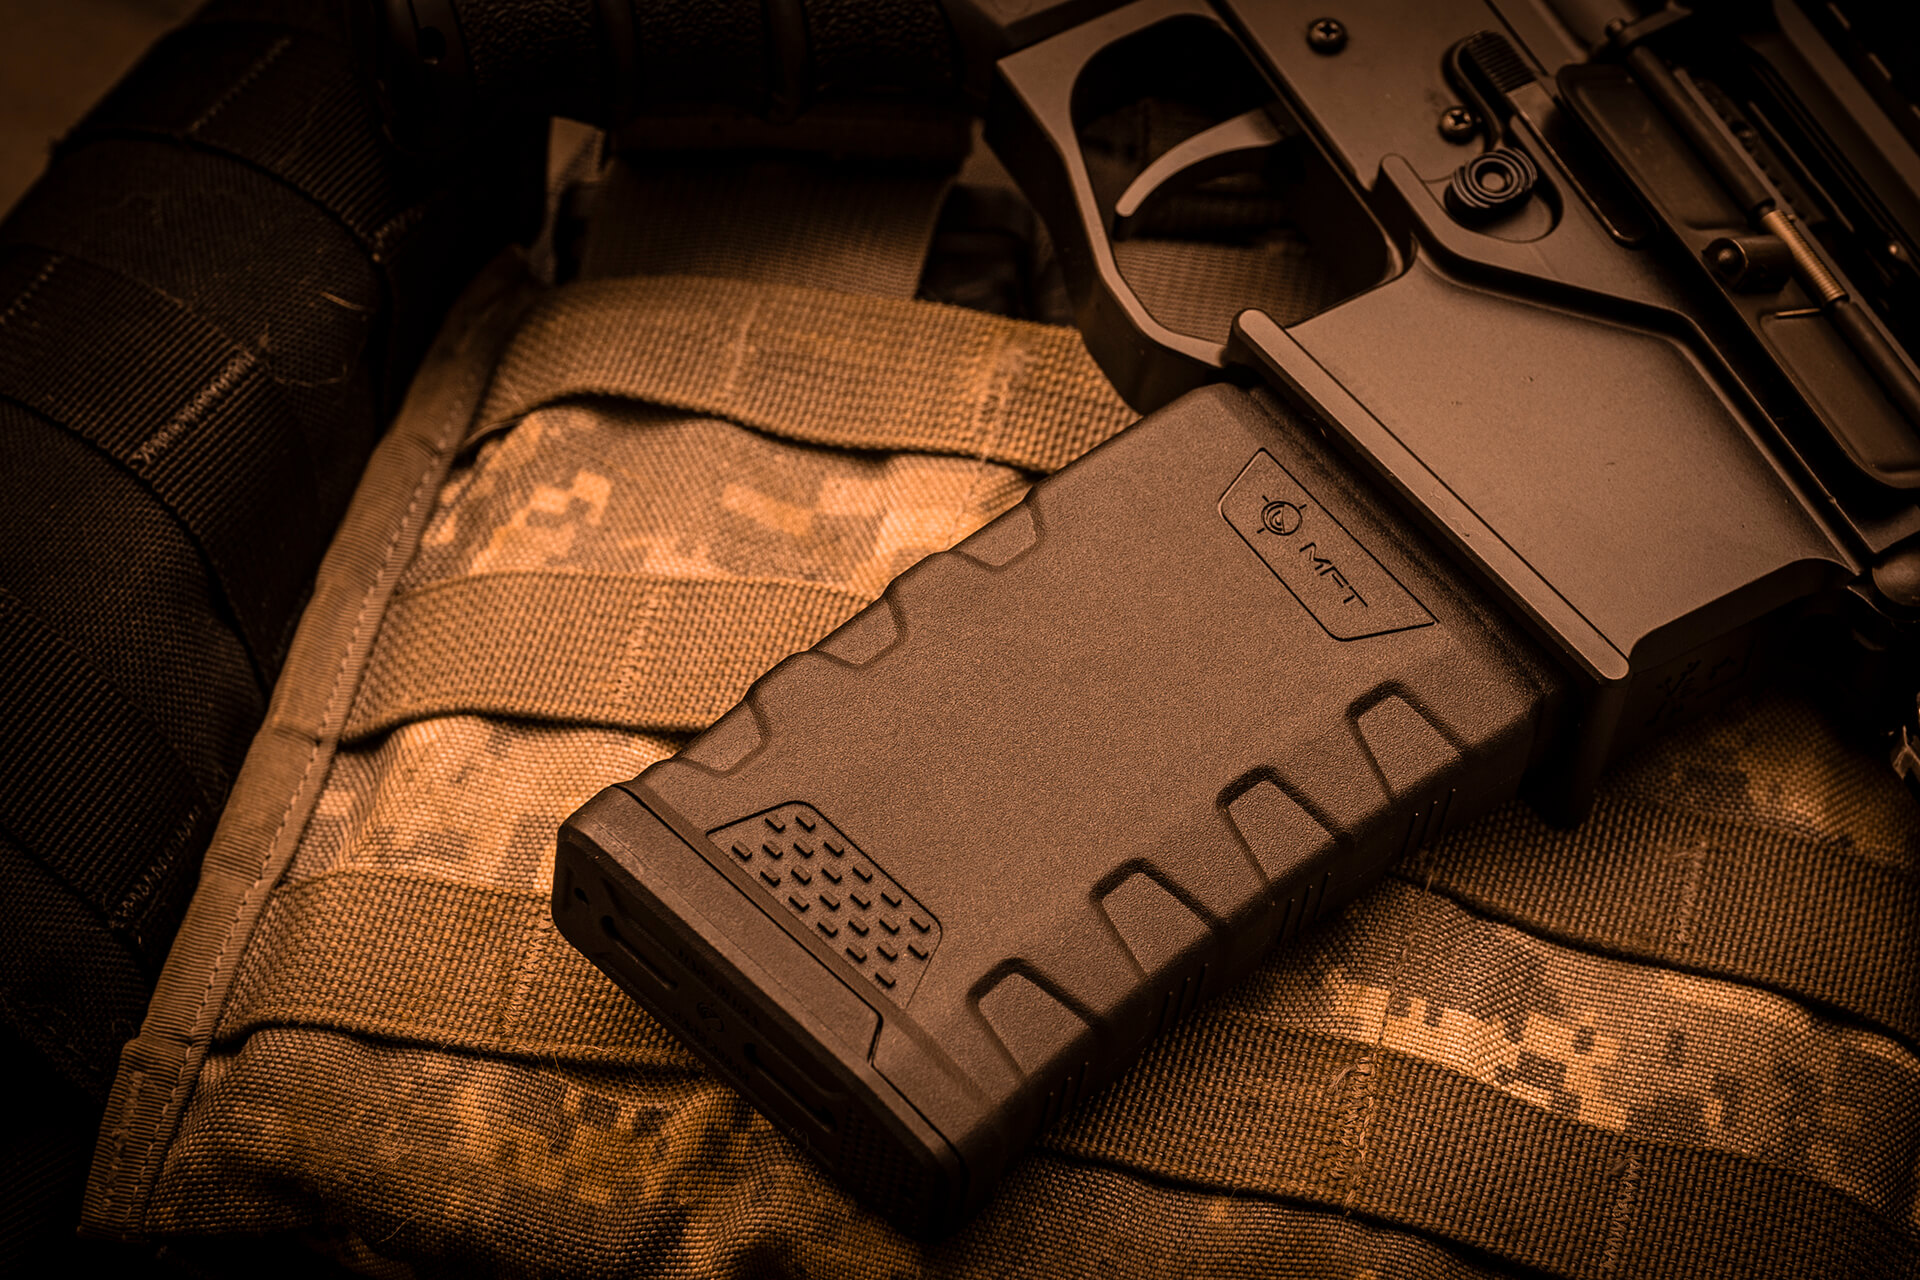 The Mission First Tactical Extreme Duty Magazine.